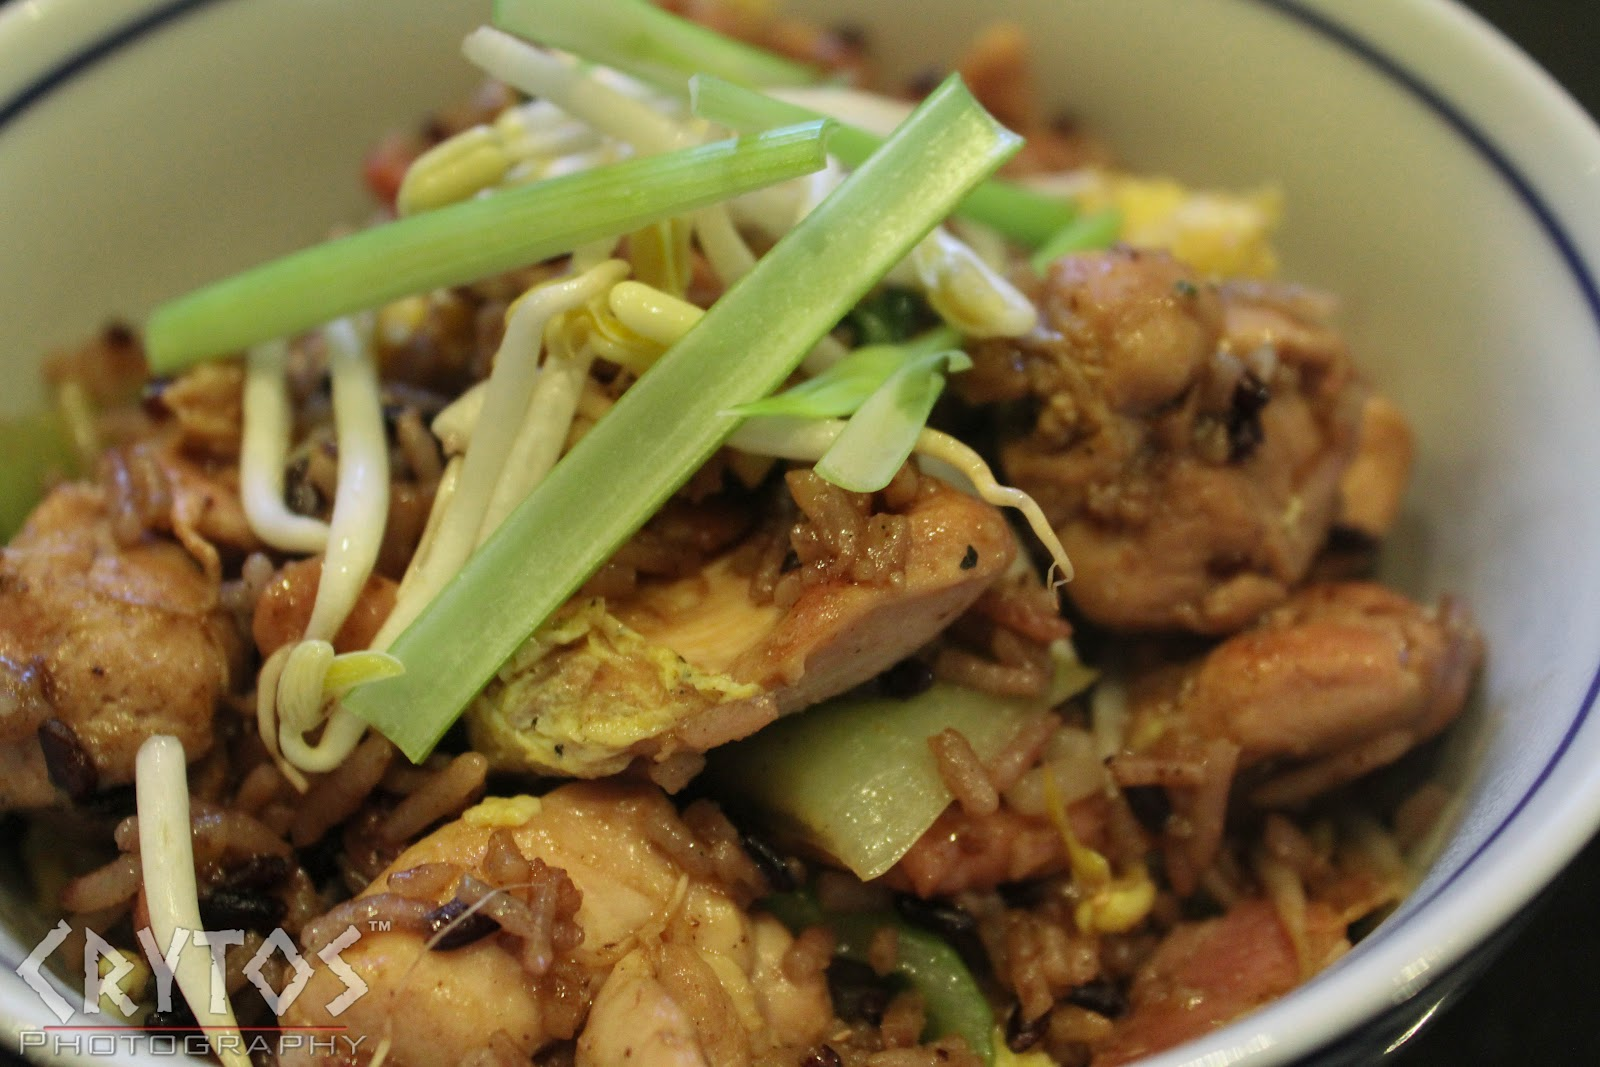 Chicken and Bok Choy Black Fried Rice | Crytos: Food